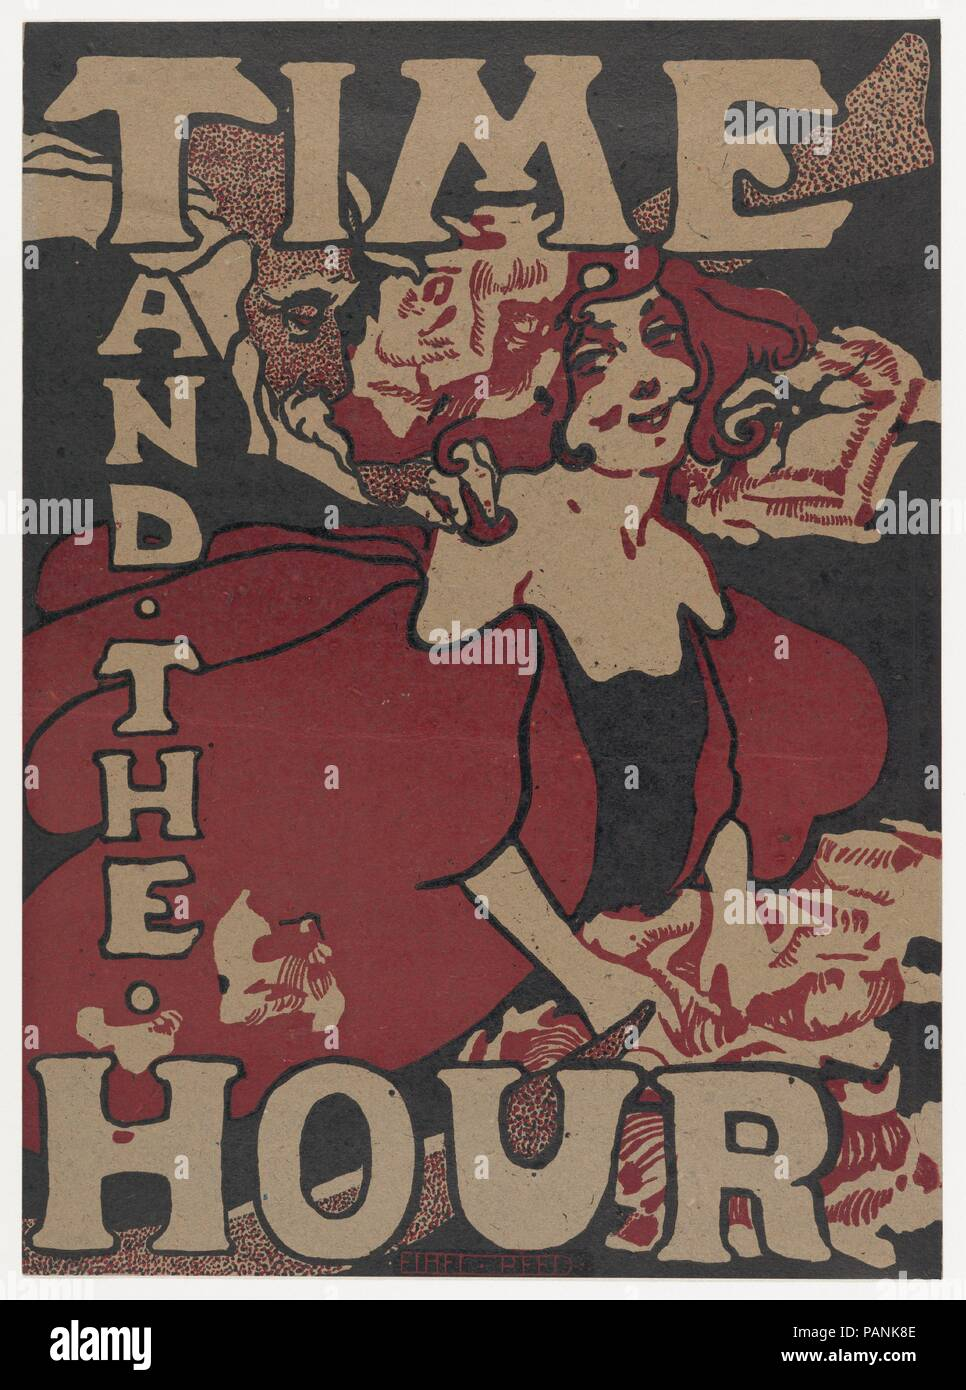 Time and the Hour. Artist: Ethel Reed (American, 1874-after 1900). Dimensions: Sheet: 18 3/8 × 13 7/16 in. (46.6 × 34.2 cm). Publisher: Time and The Hour. Date: 1896. Museum: Metropolitan Museum of Art, New York, USA. - Stock Image